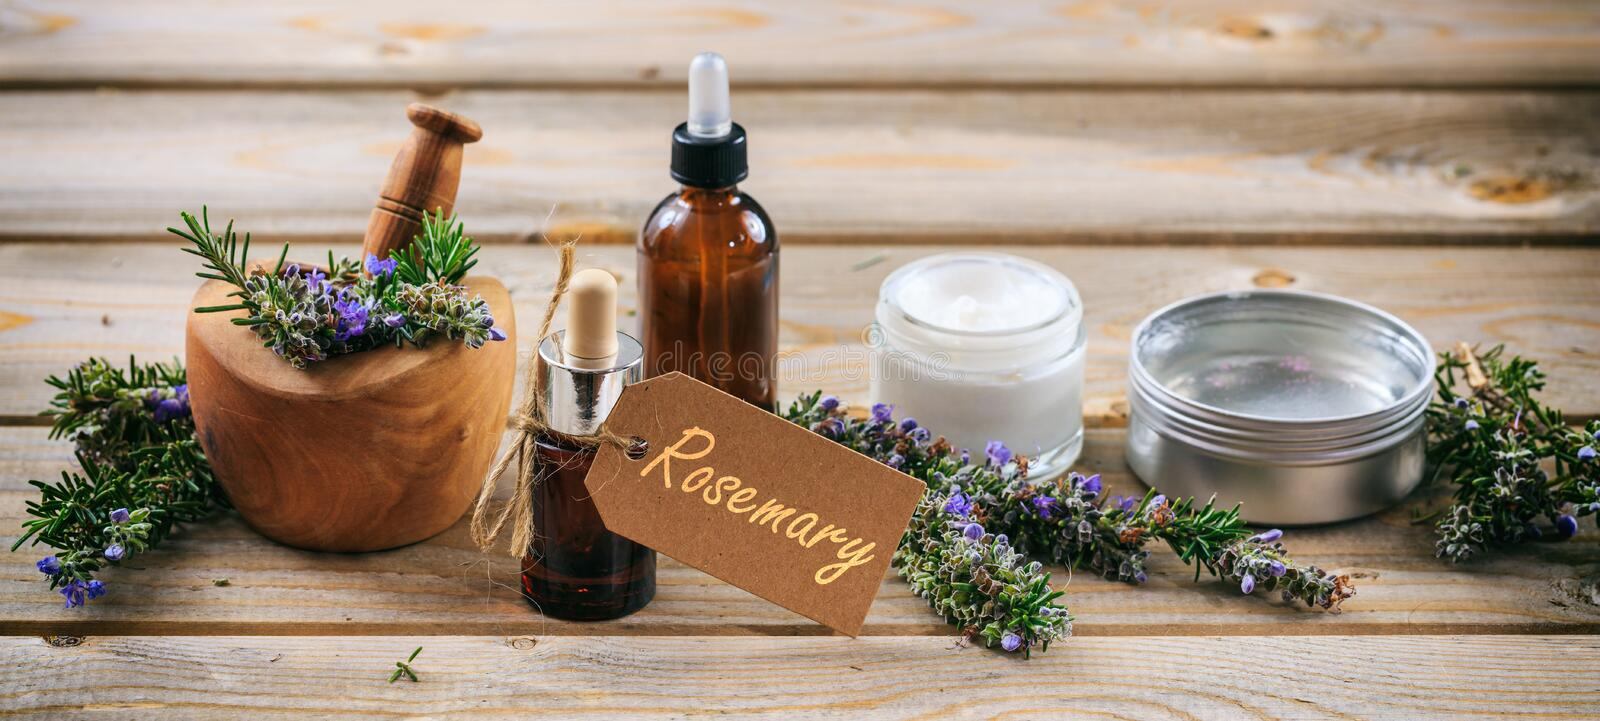 Rosemary aromatherapy. Essential oil and cosmetics, tag with text rosemary, banner. Wooden table background. Rosemary aromatherapy. Essential oil and cosmetics royalty free stock photo